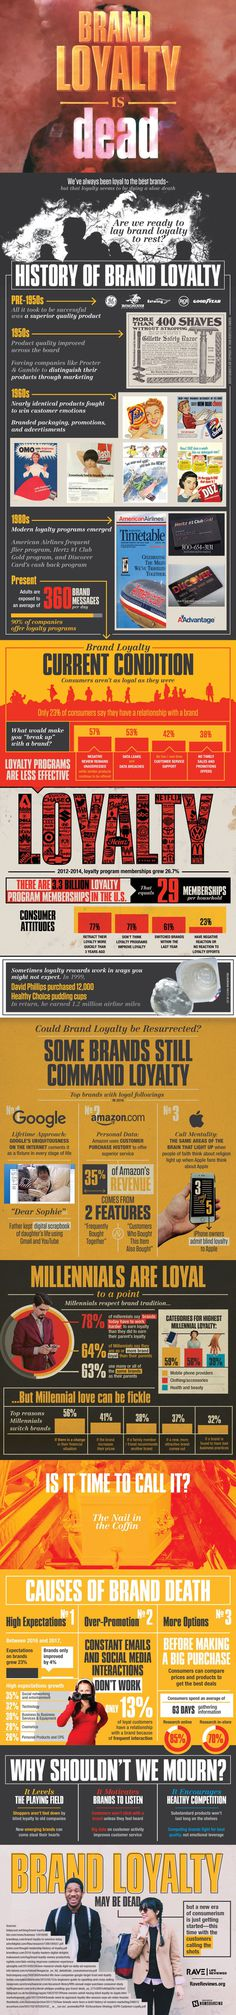 brand loyalty - is brand loyalty dead?